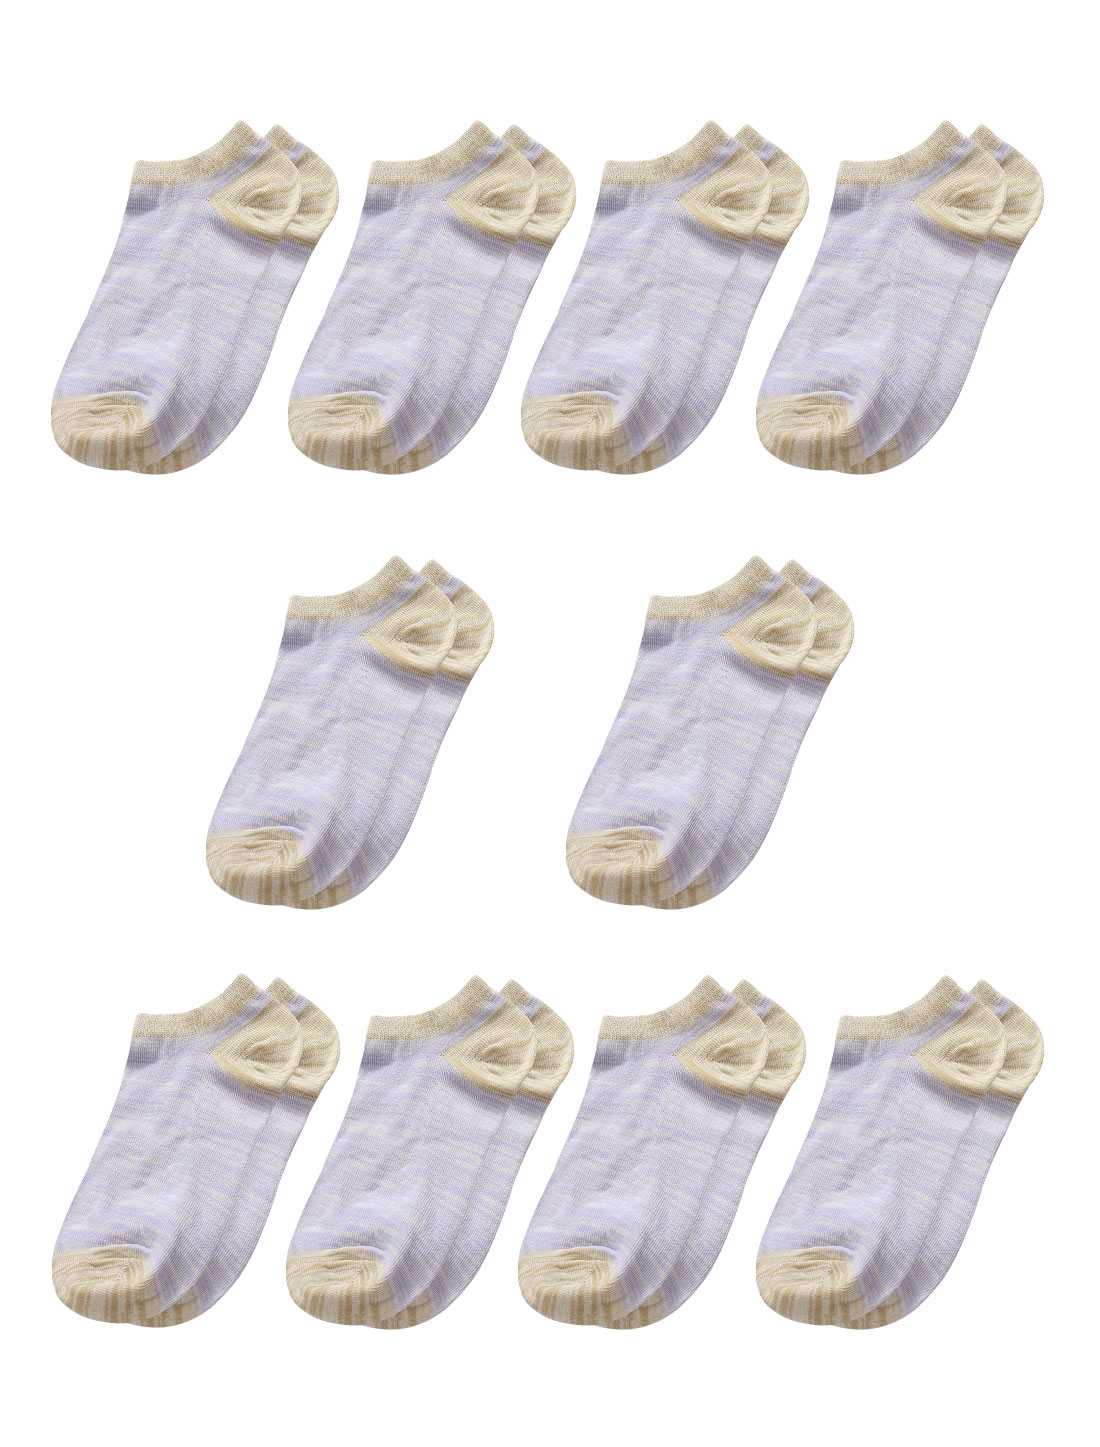 Women Contrast Color Low Cut Ankle Length Short Socks 10 Pairs Purple 7-9